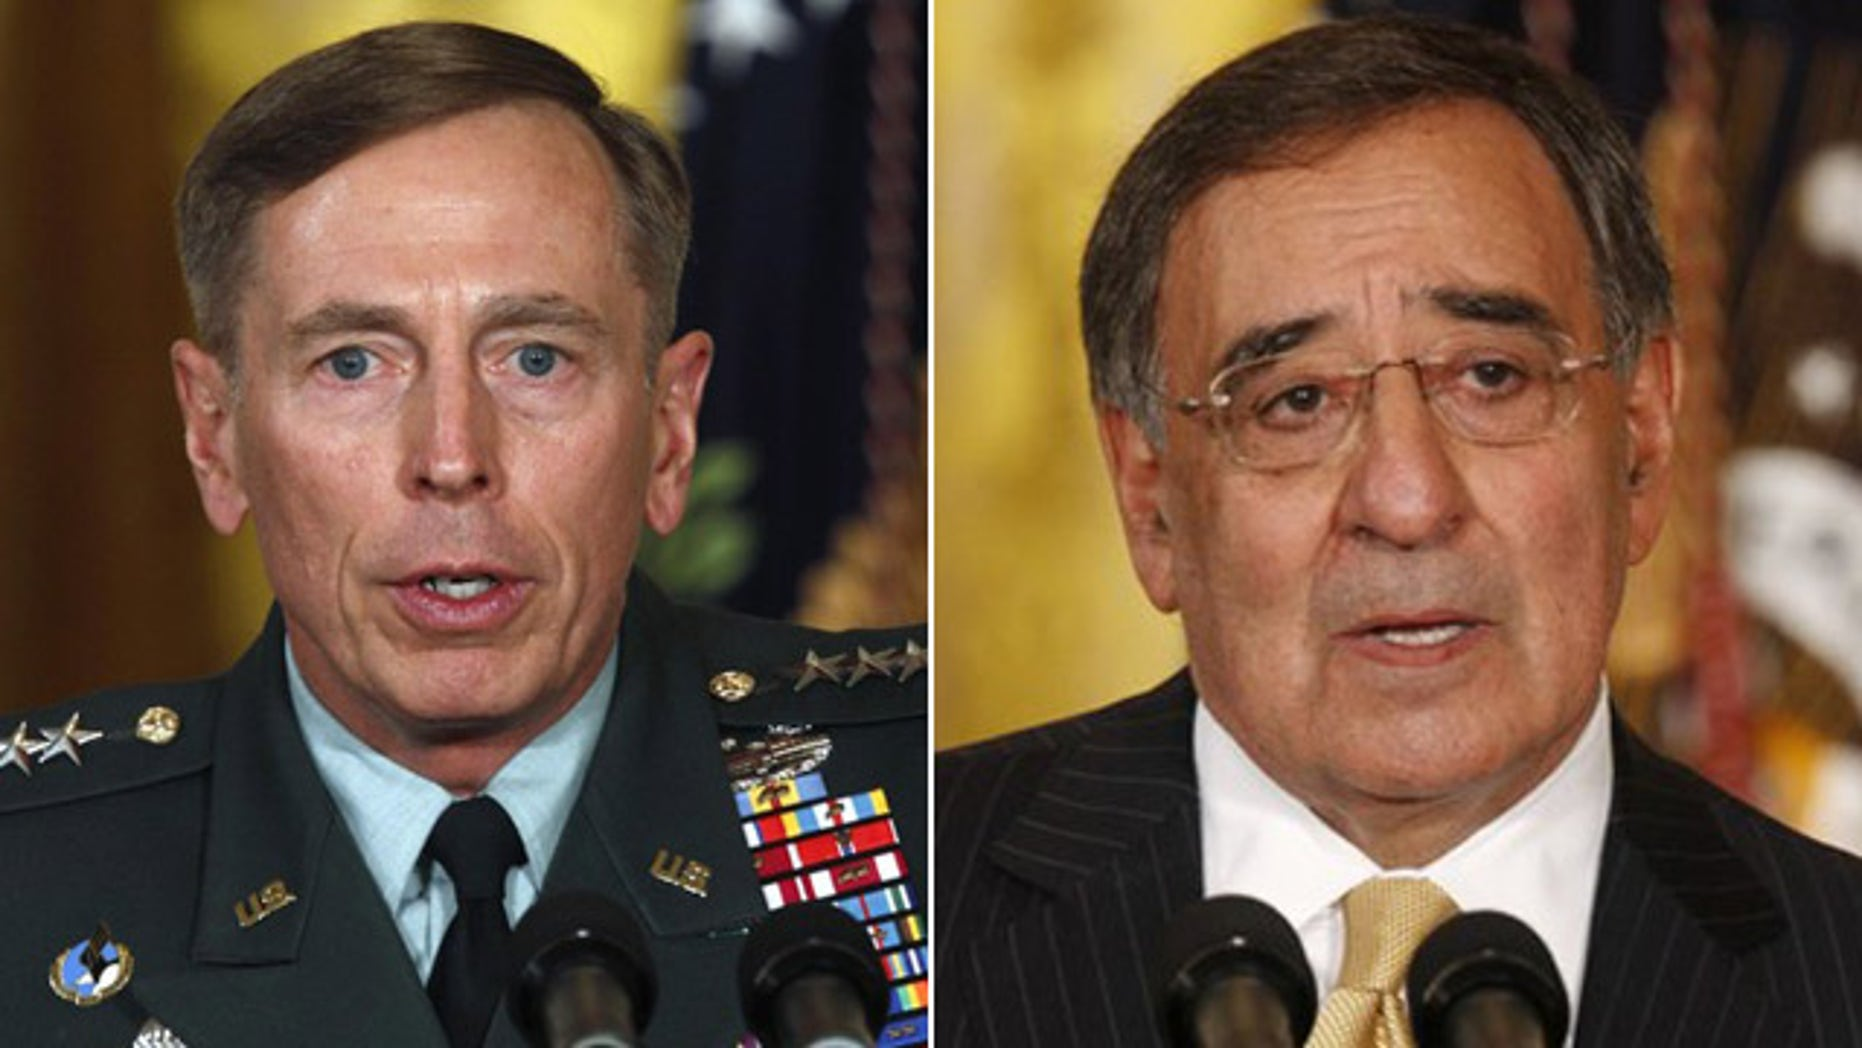 Gen. David Petraeus, top U.S. commander in Afghanistan, is in line to take over as CIA director for Leon Panetta, who has been tapped by Obama as the next defense secretary.